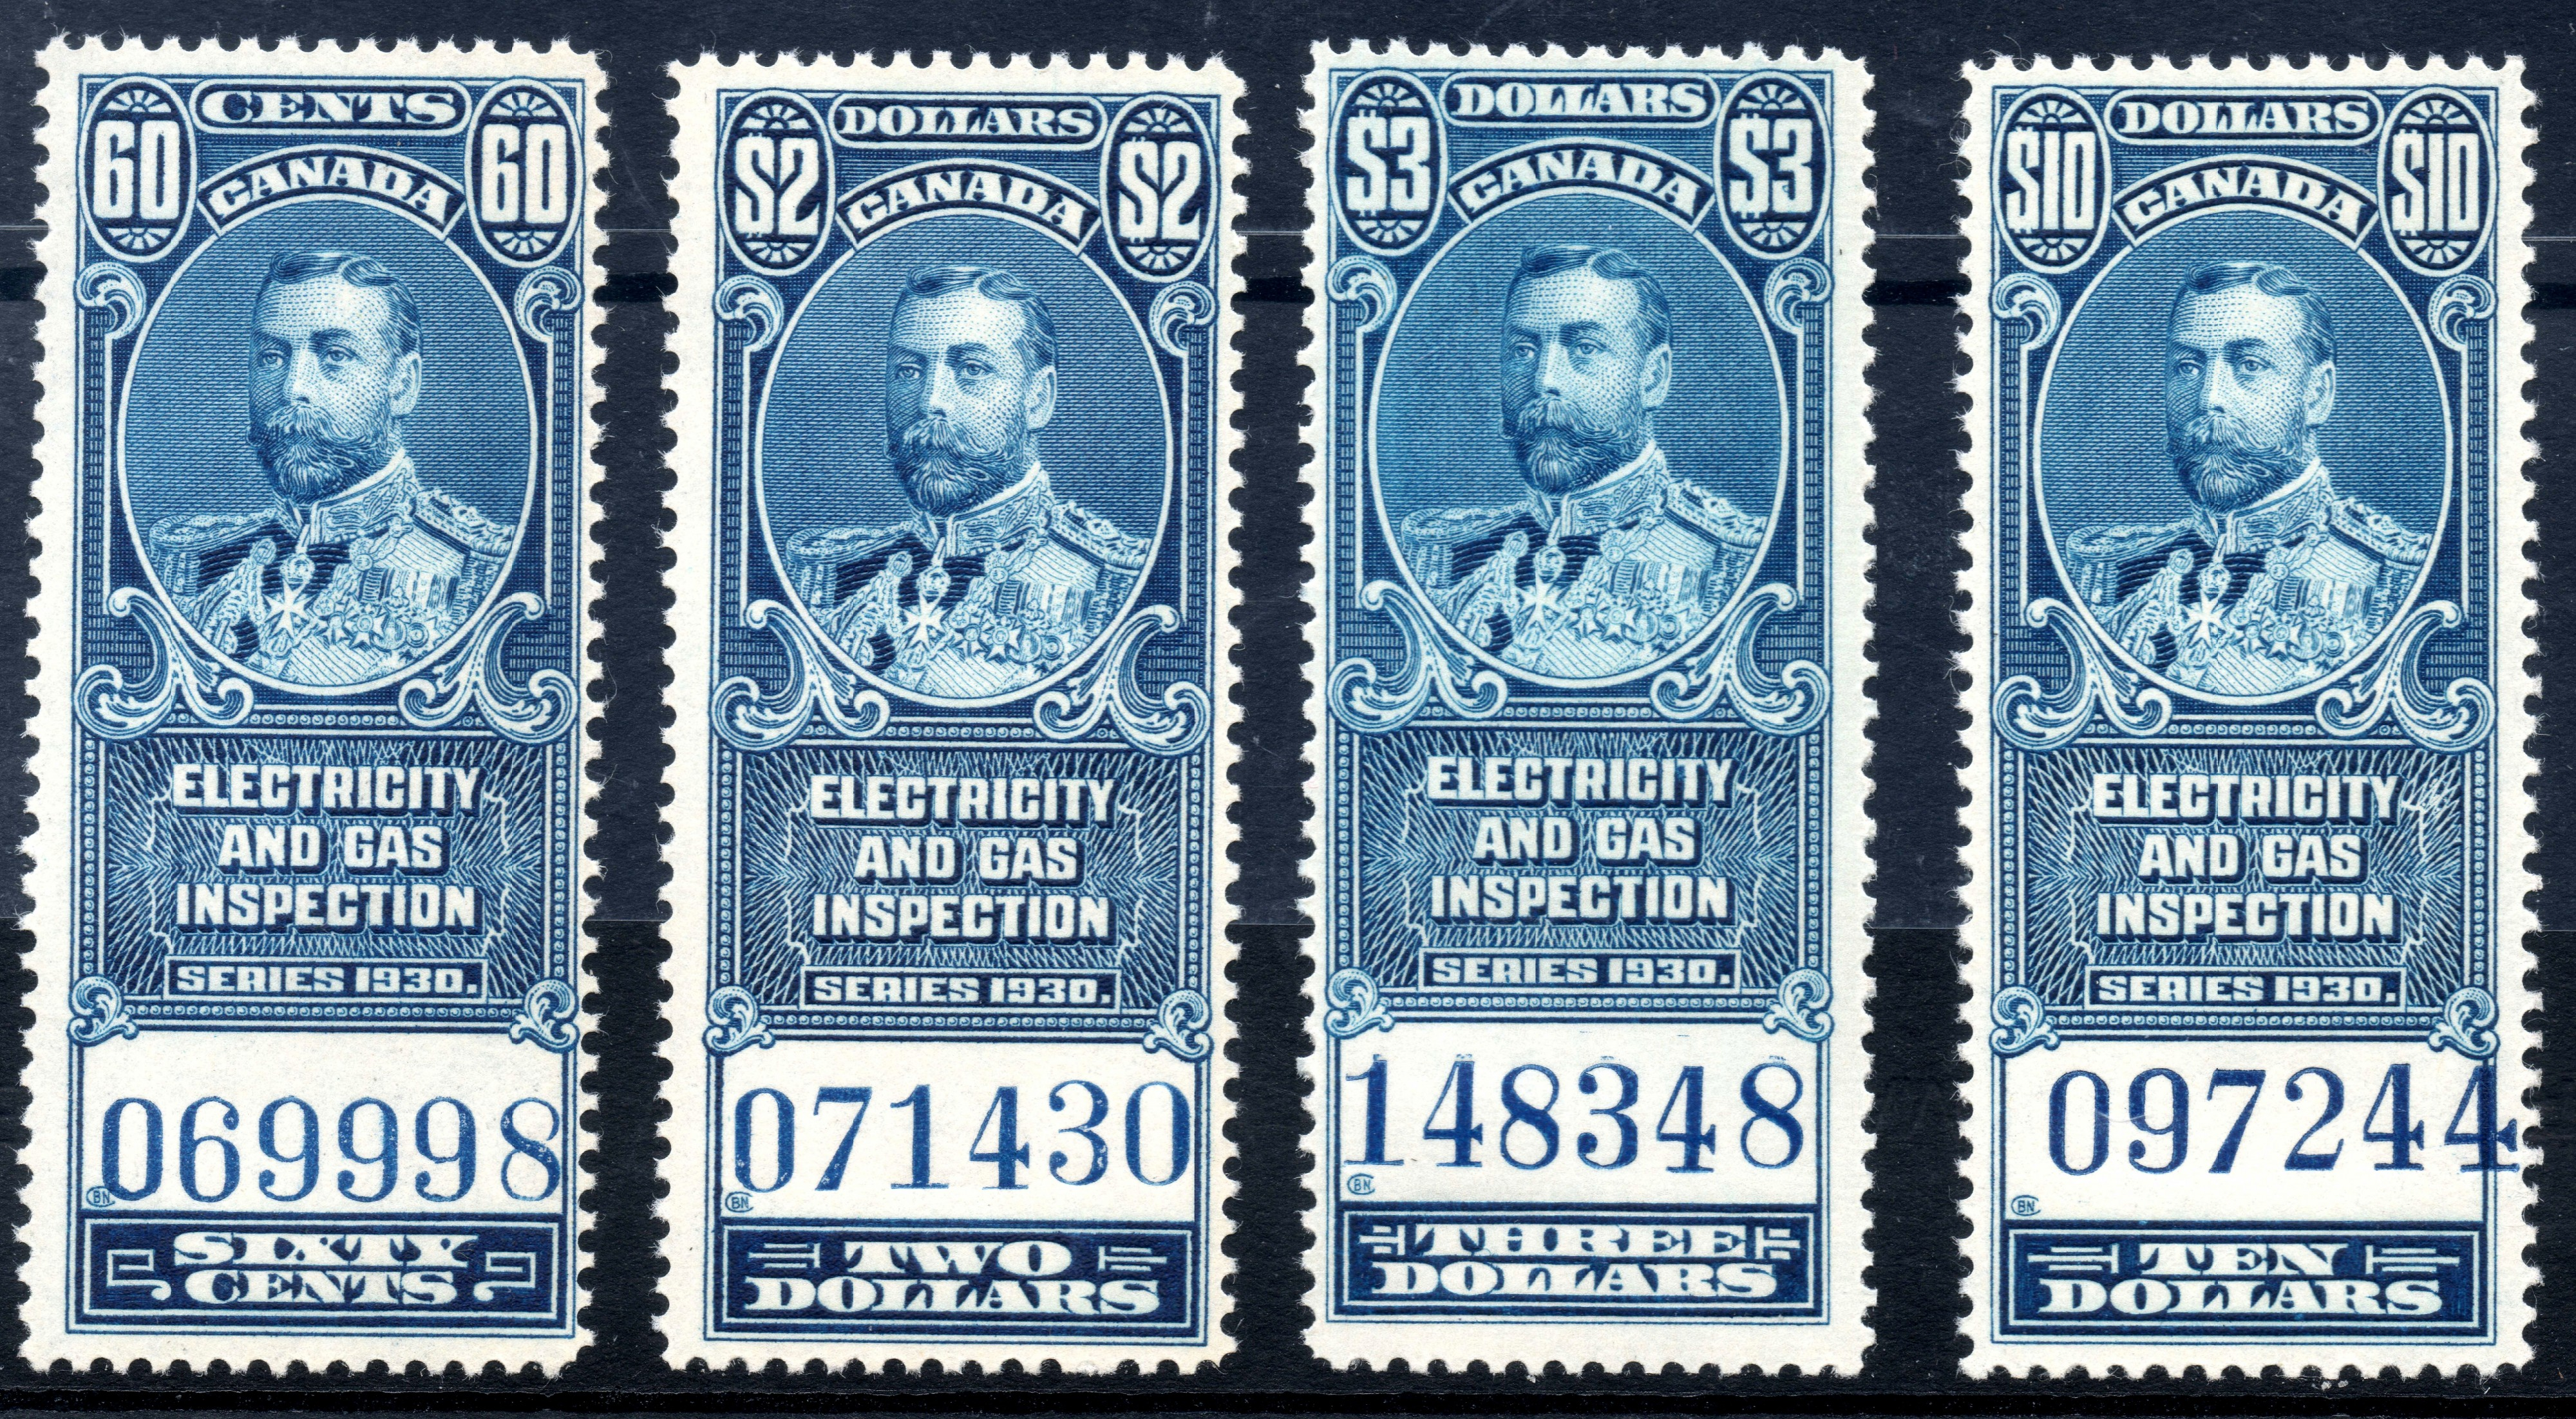 Canada 1930 Electricity and Gas Inspection stamps